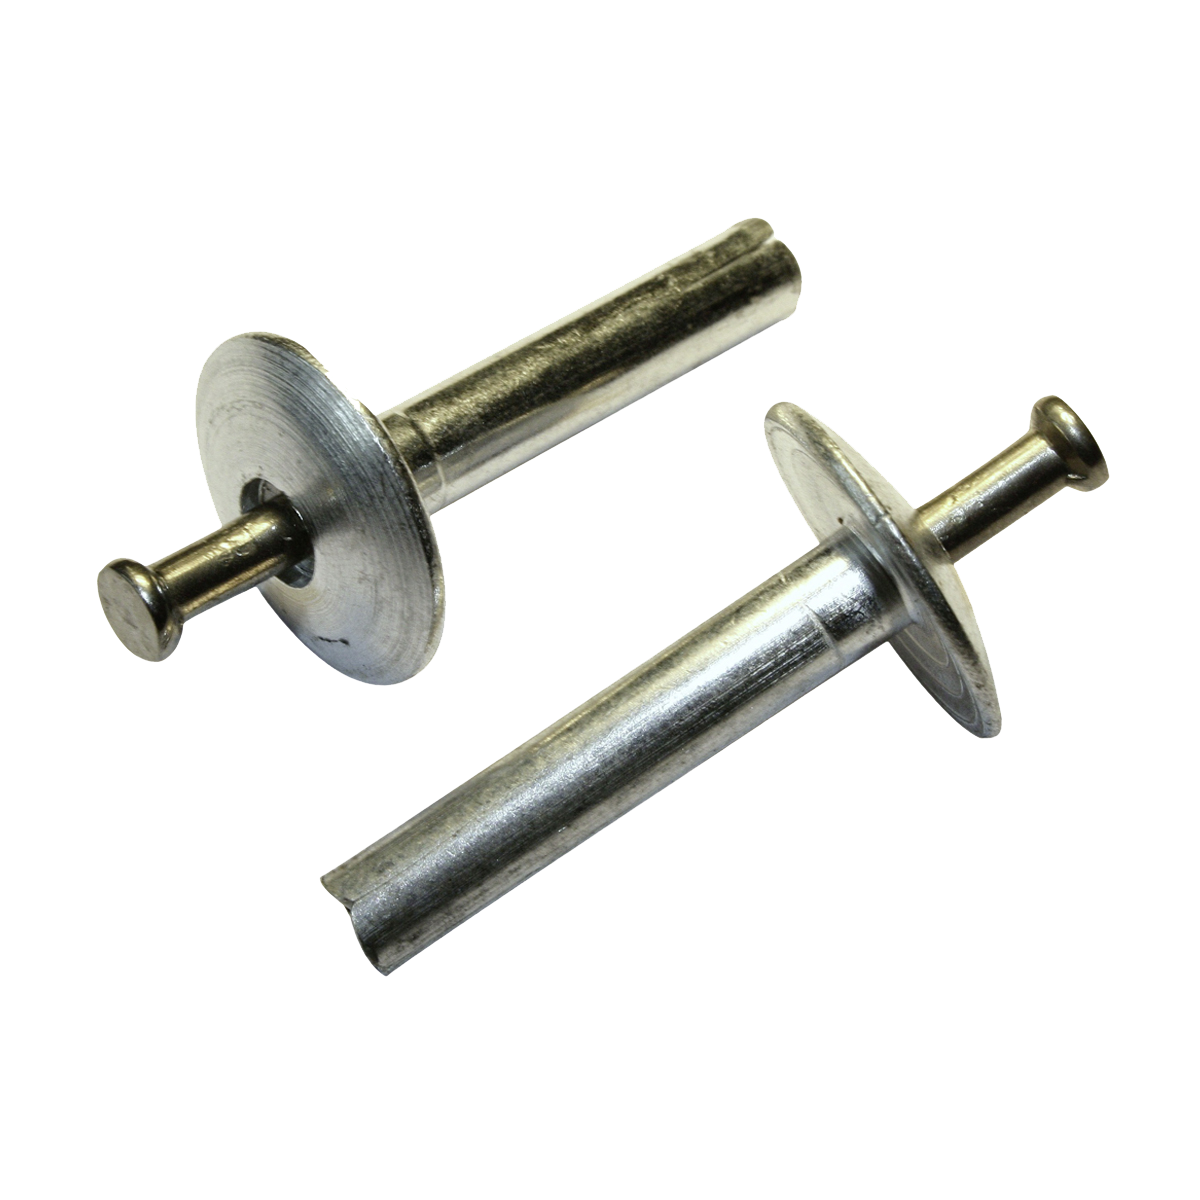 Nails for coated steel sheets Nails for coated steel sheets